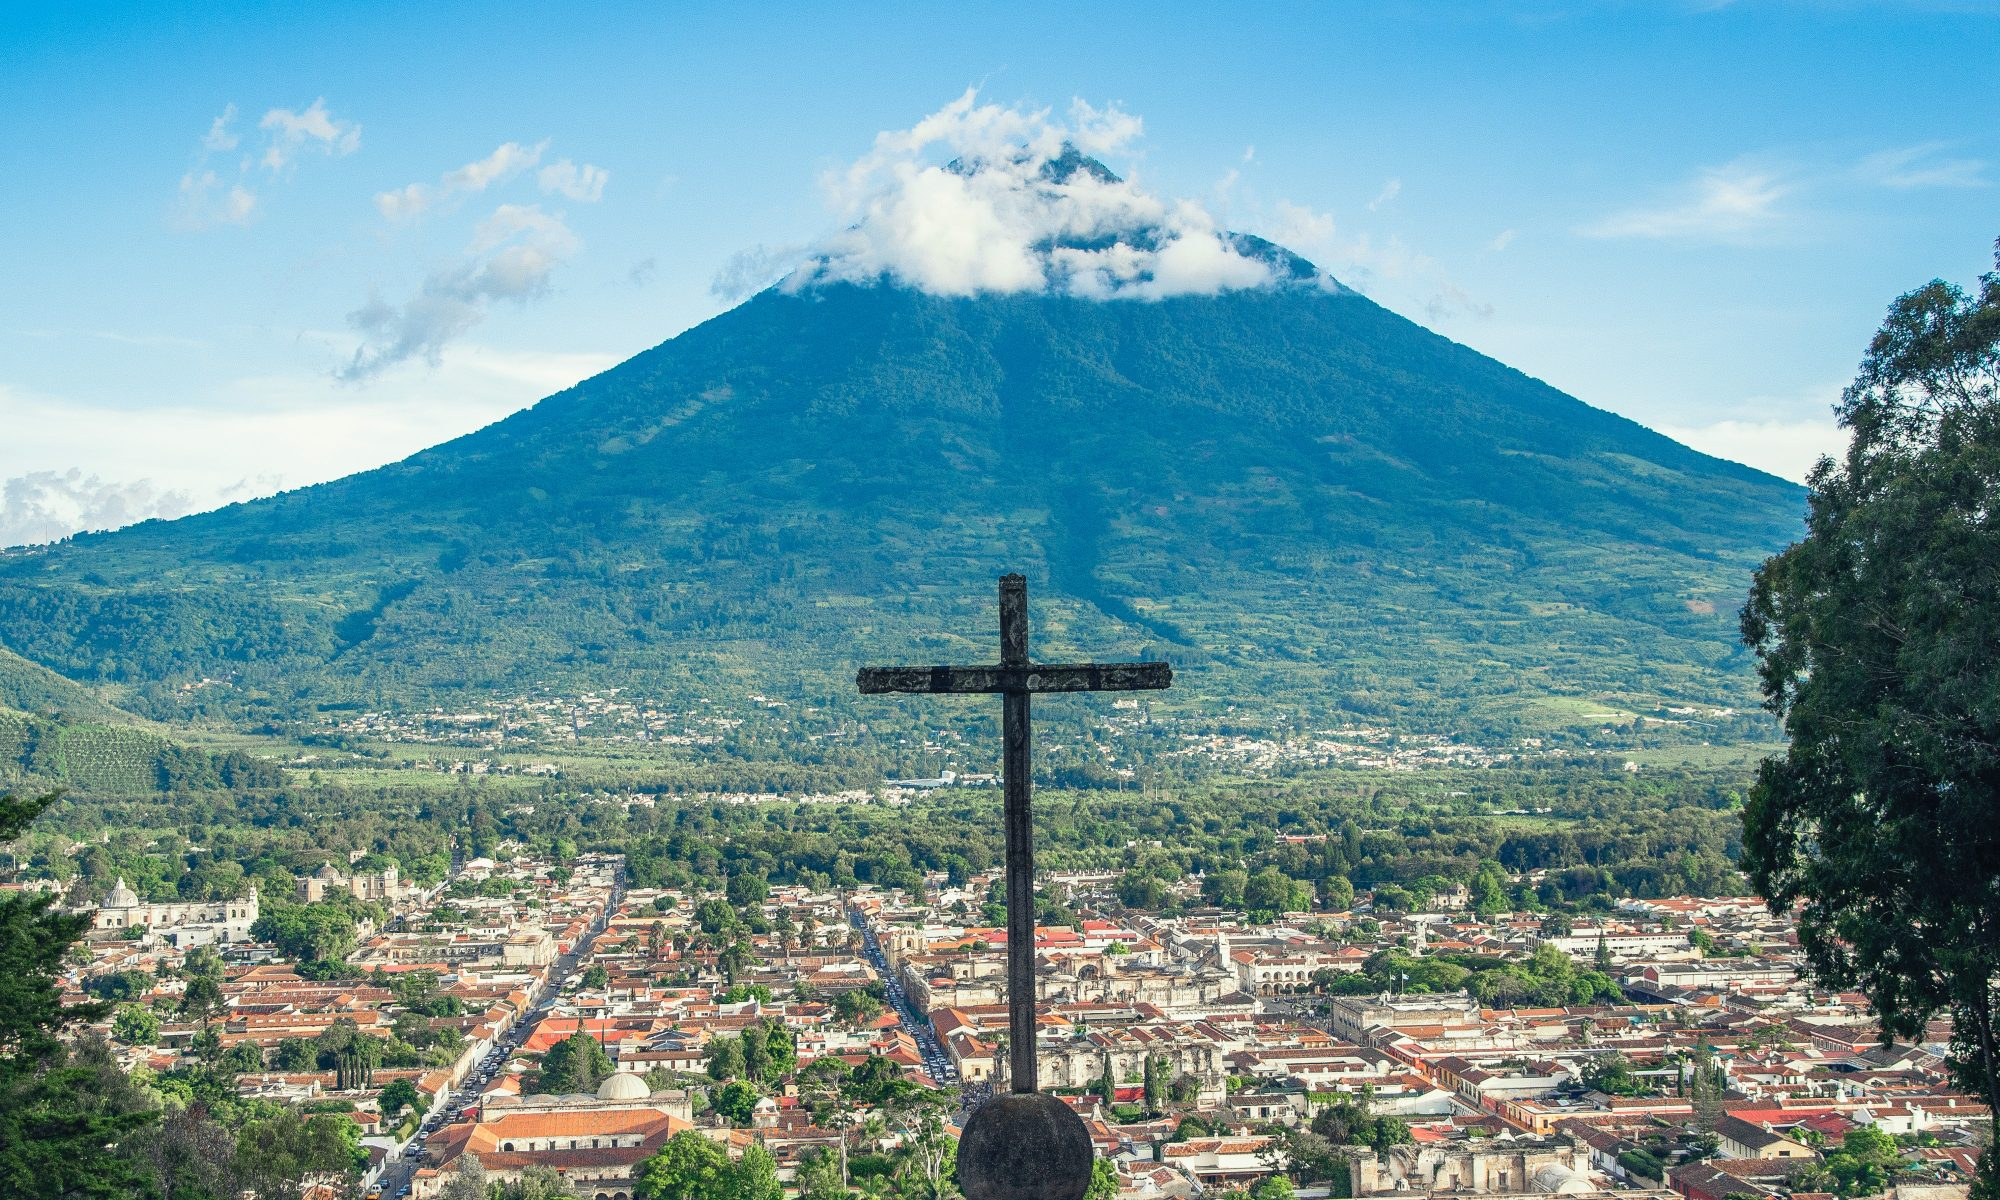 7 things you shouldn't do in Guatemala